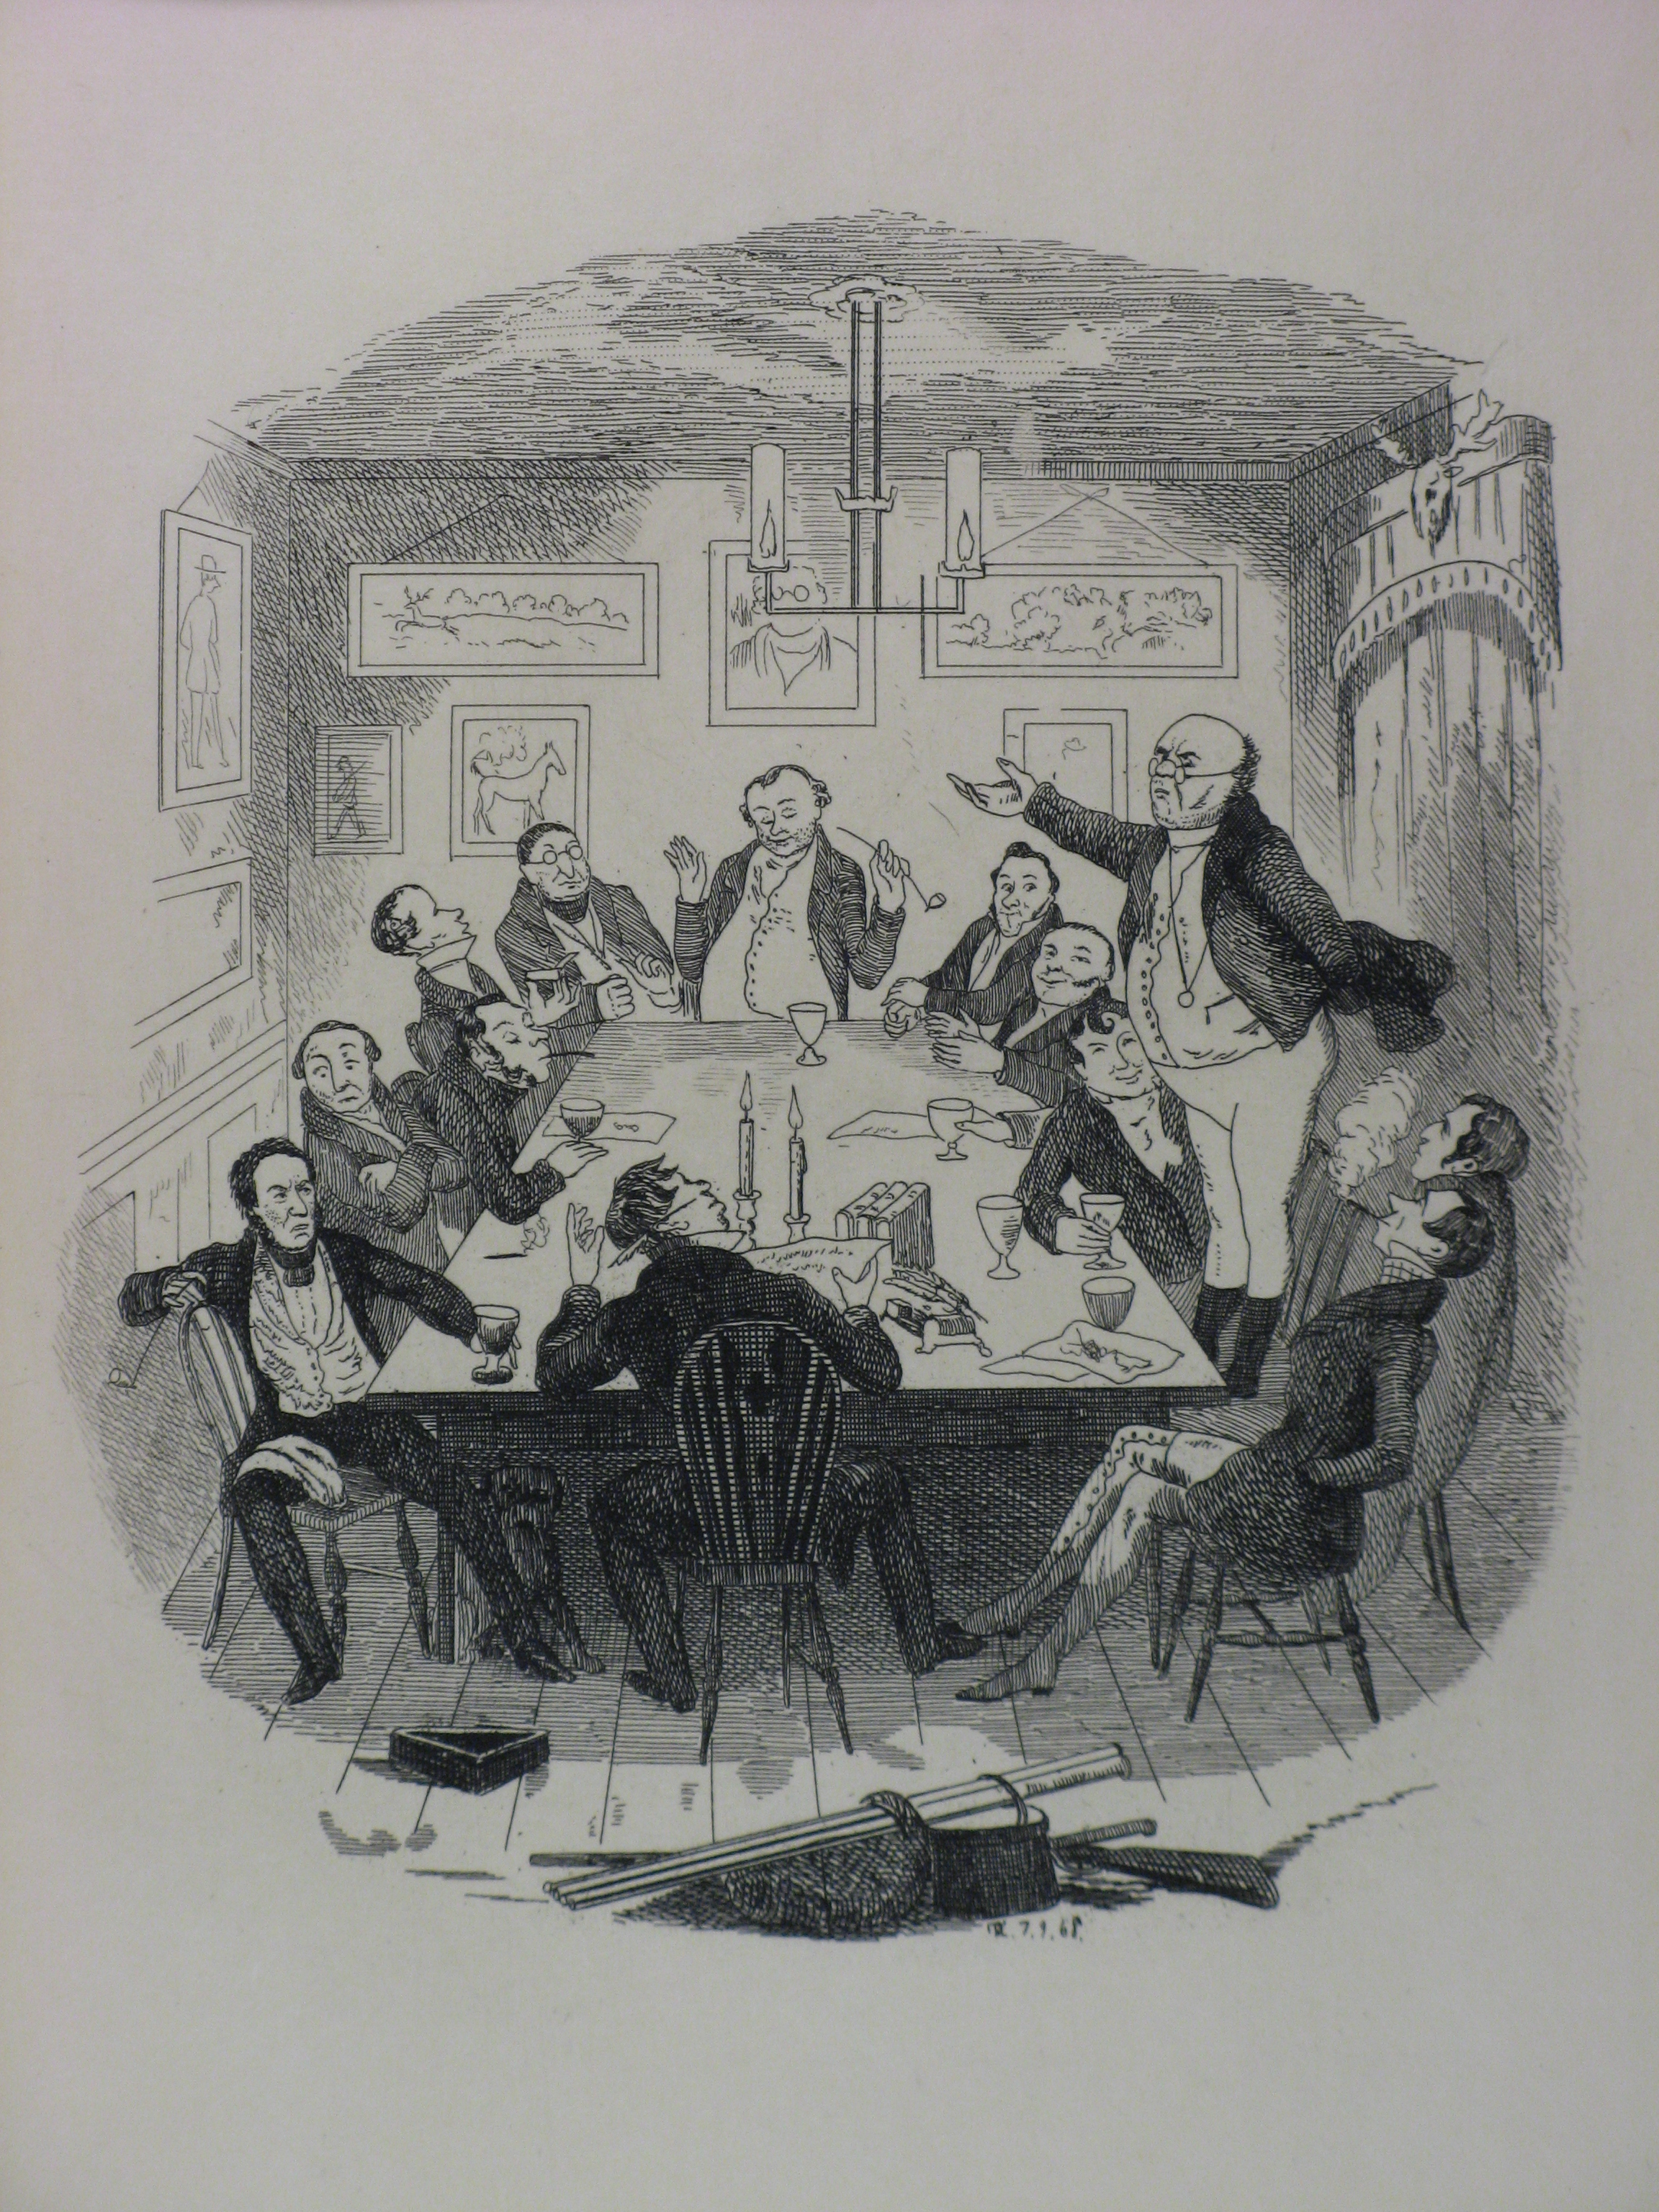 https://upload.wikimedia.org/wikipedia/commons/7/76/The_Writings_of_Charles_Dickens_v1_p4_%28engraving%29.jpg